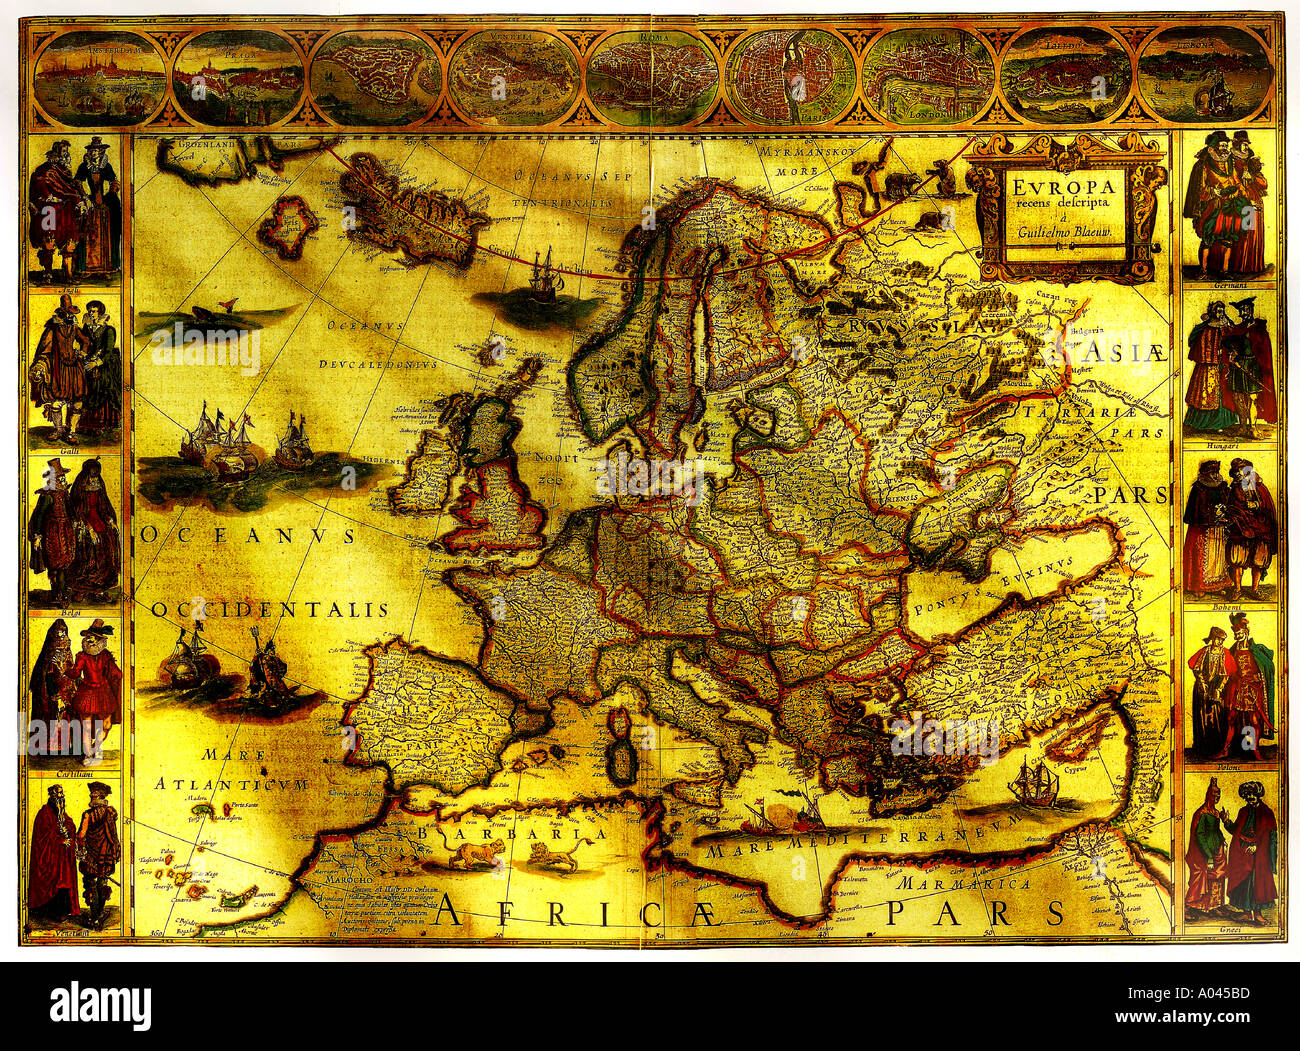 Antique Map of Europe - Stock Image